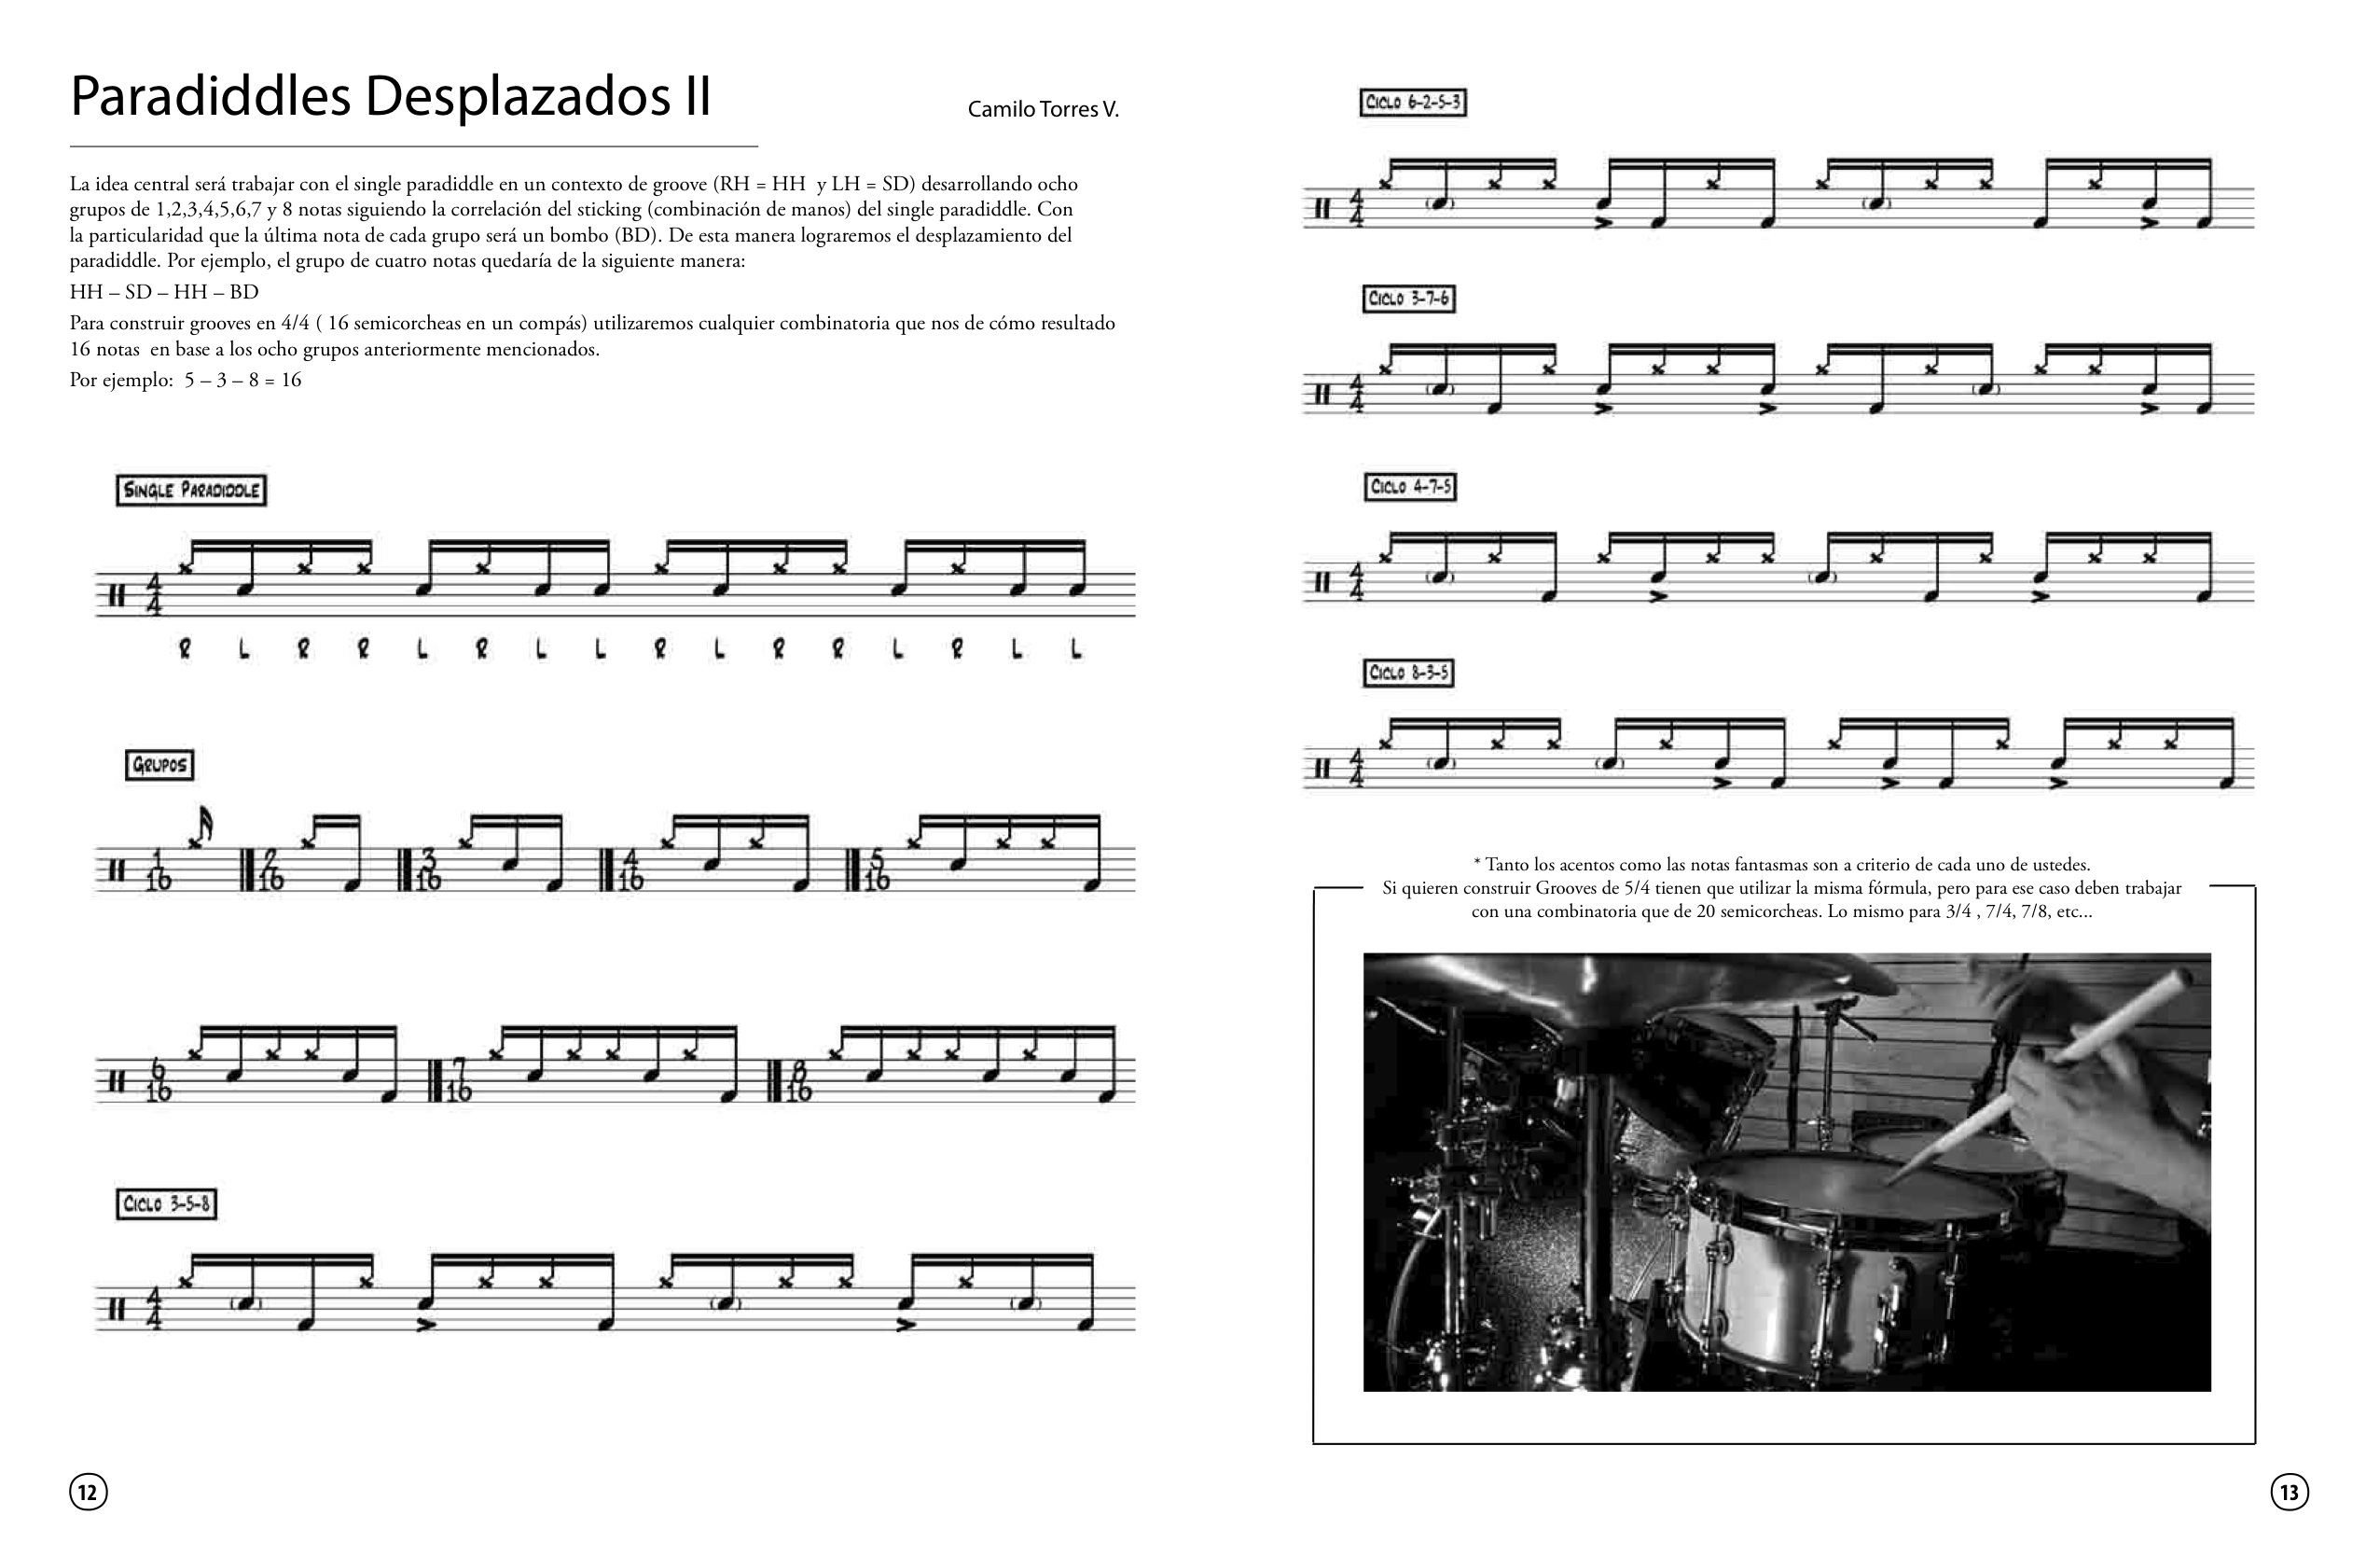 Master Class - Tips for Drummers FINAL Paradiddle 2